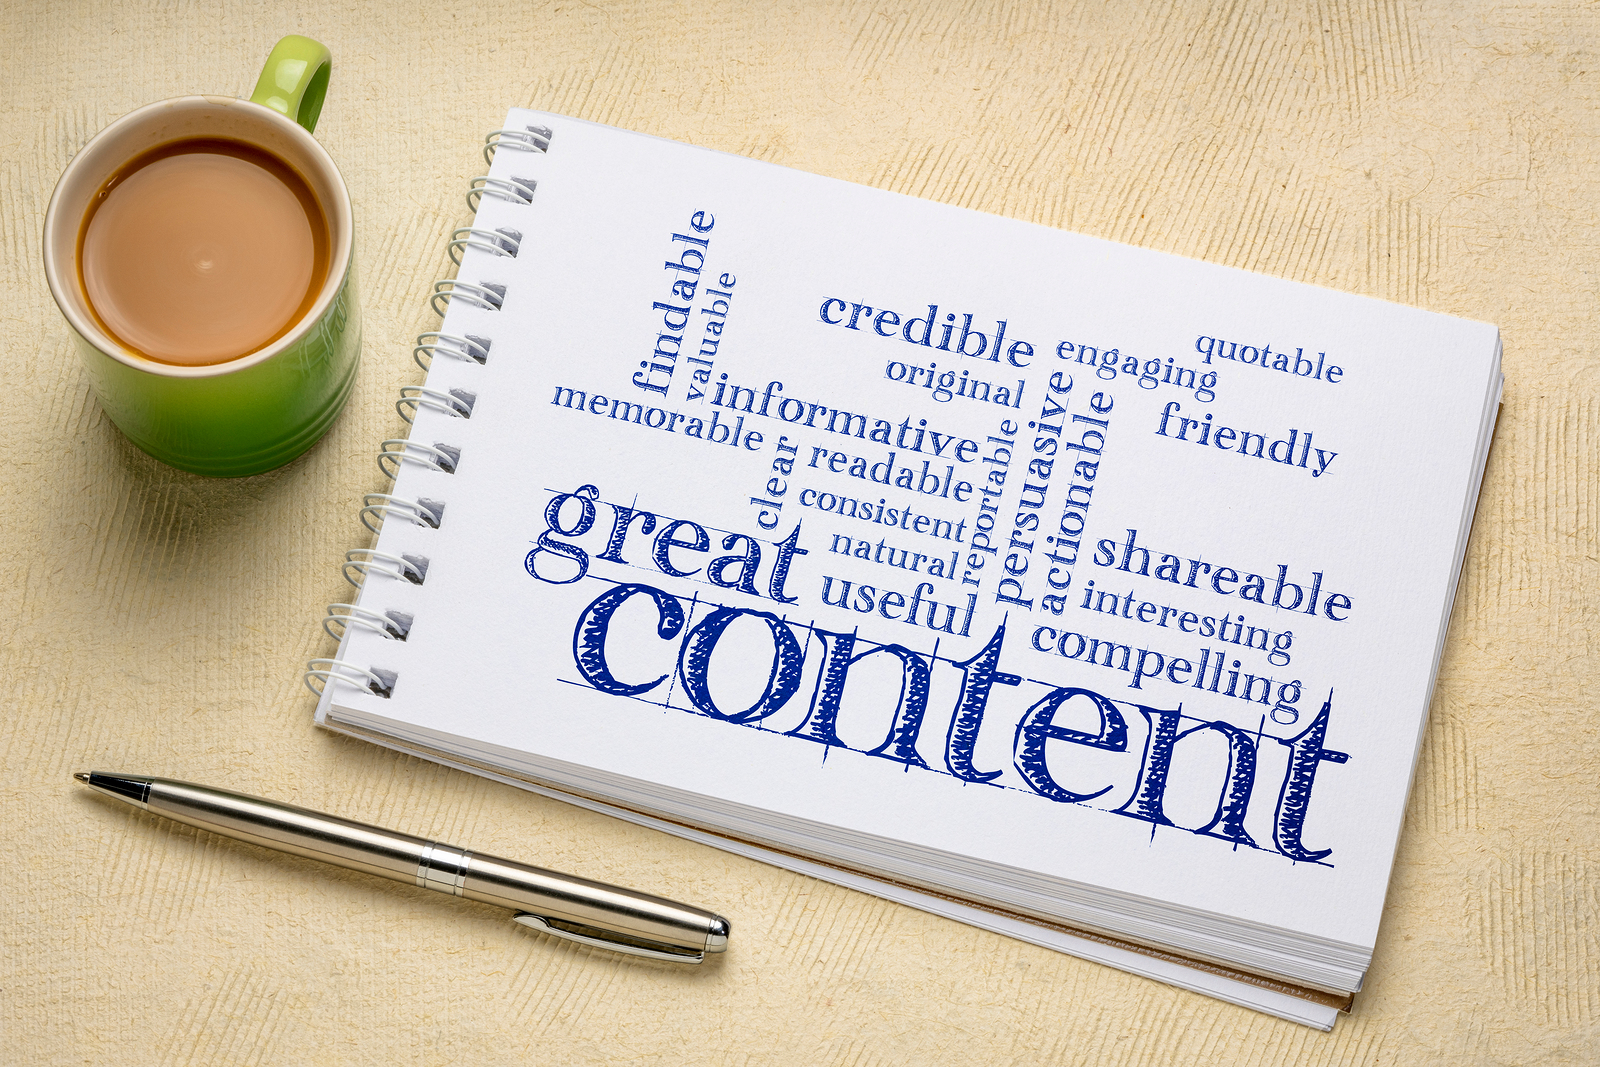 10 Steps to Develop a Winning Content Strategy